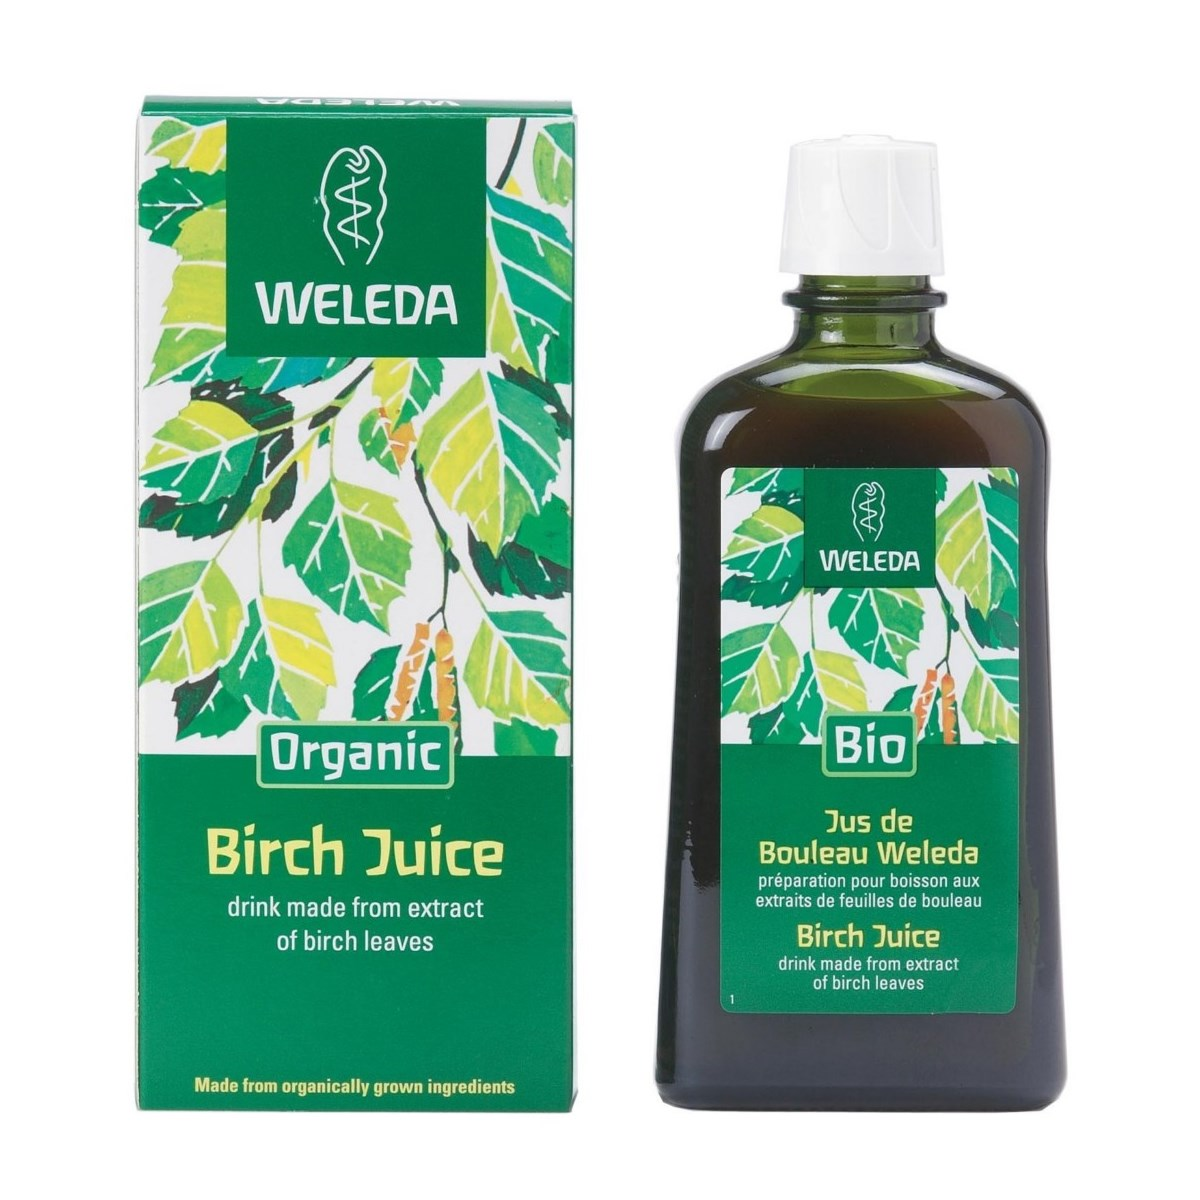 Weleda Birch Juice